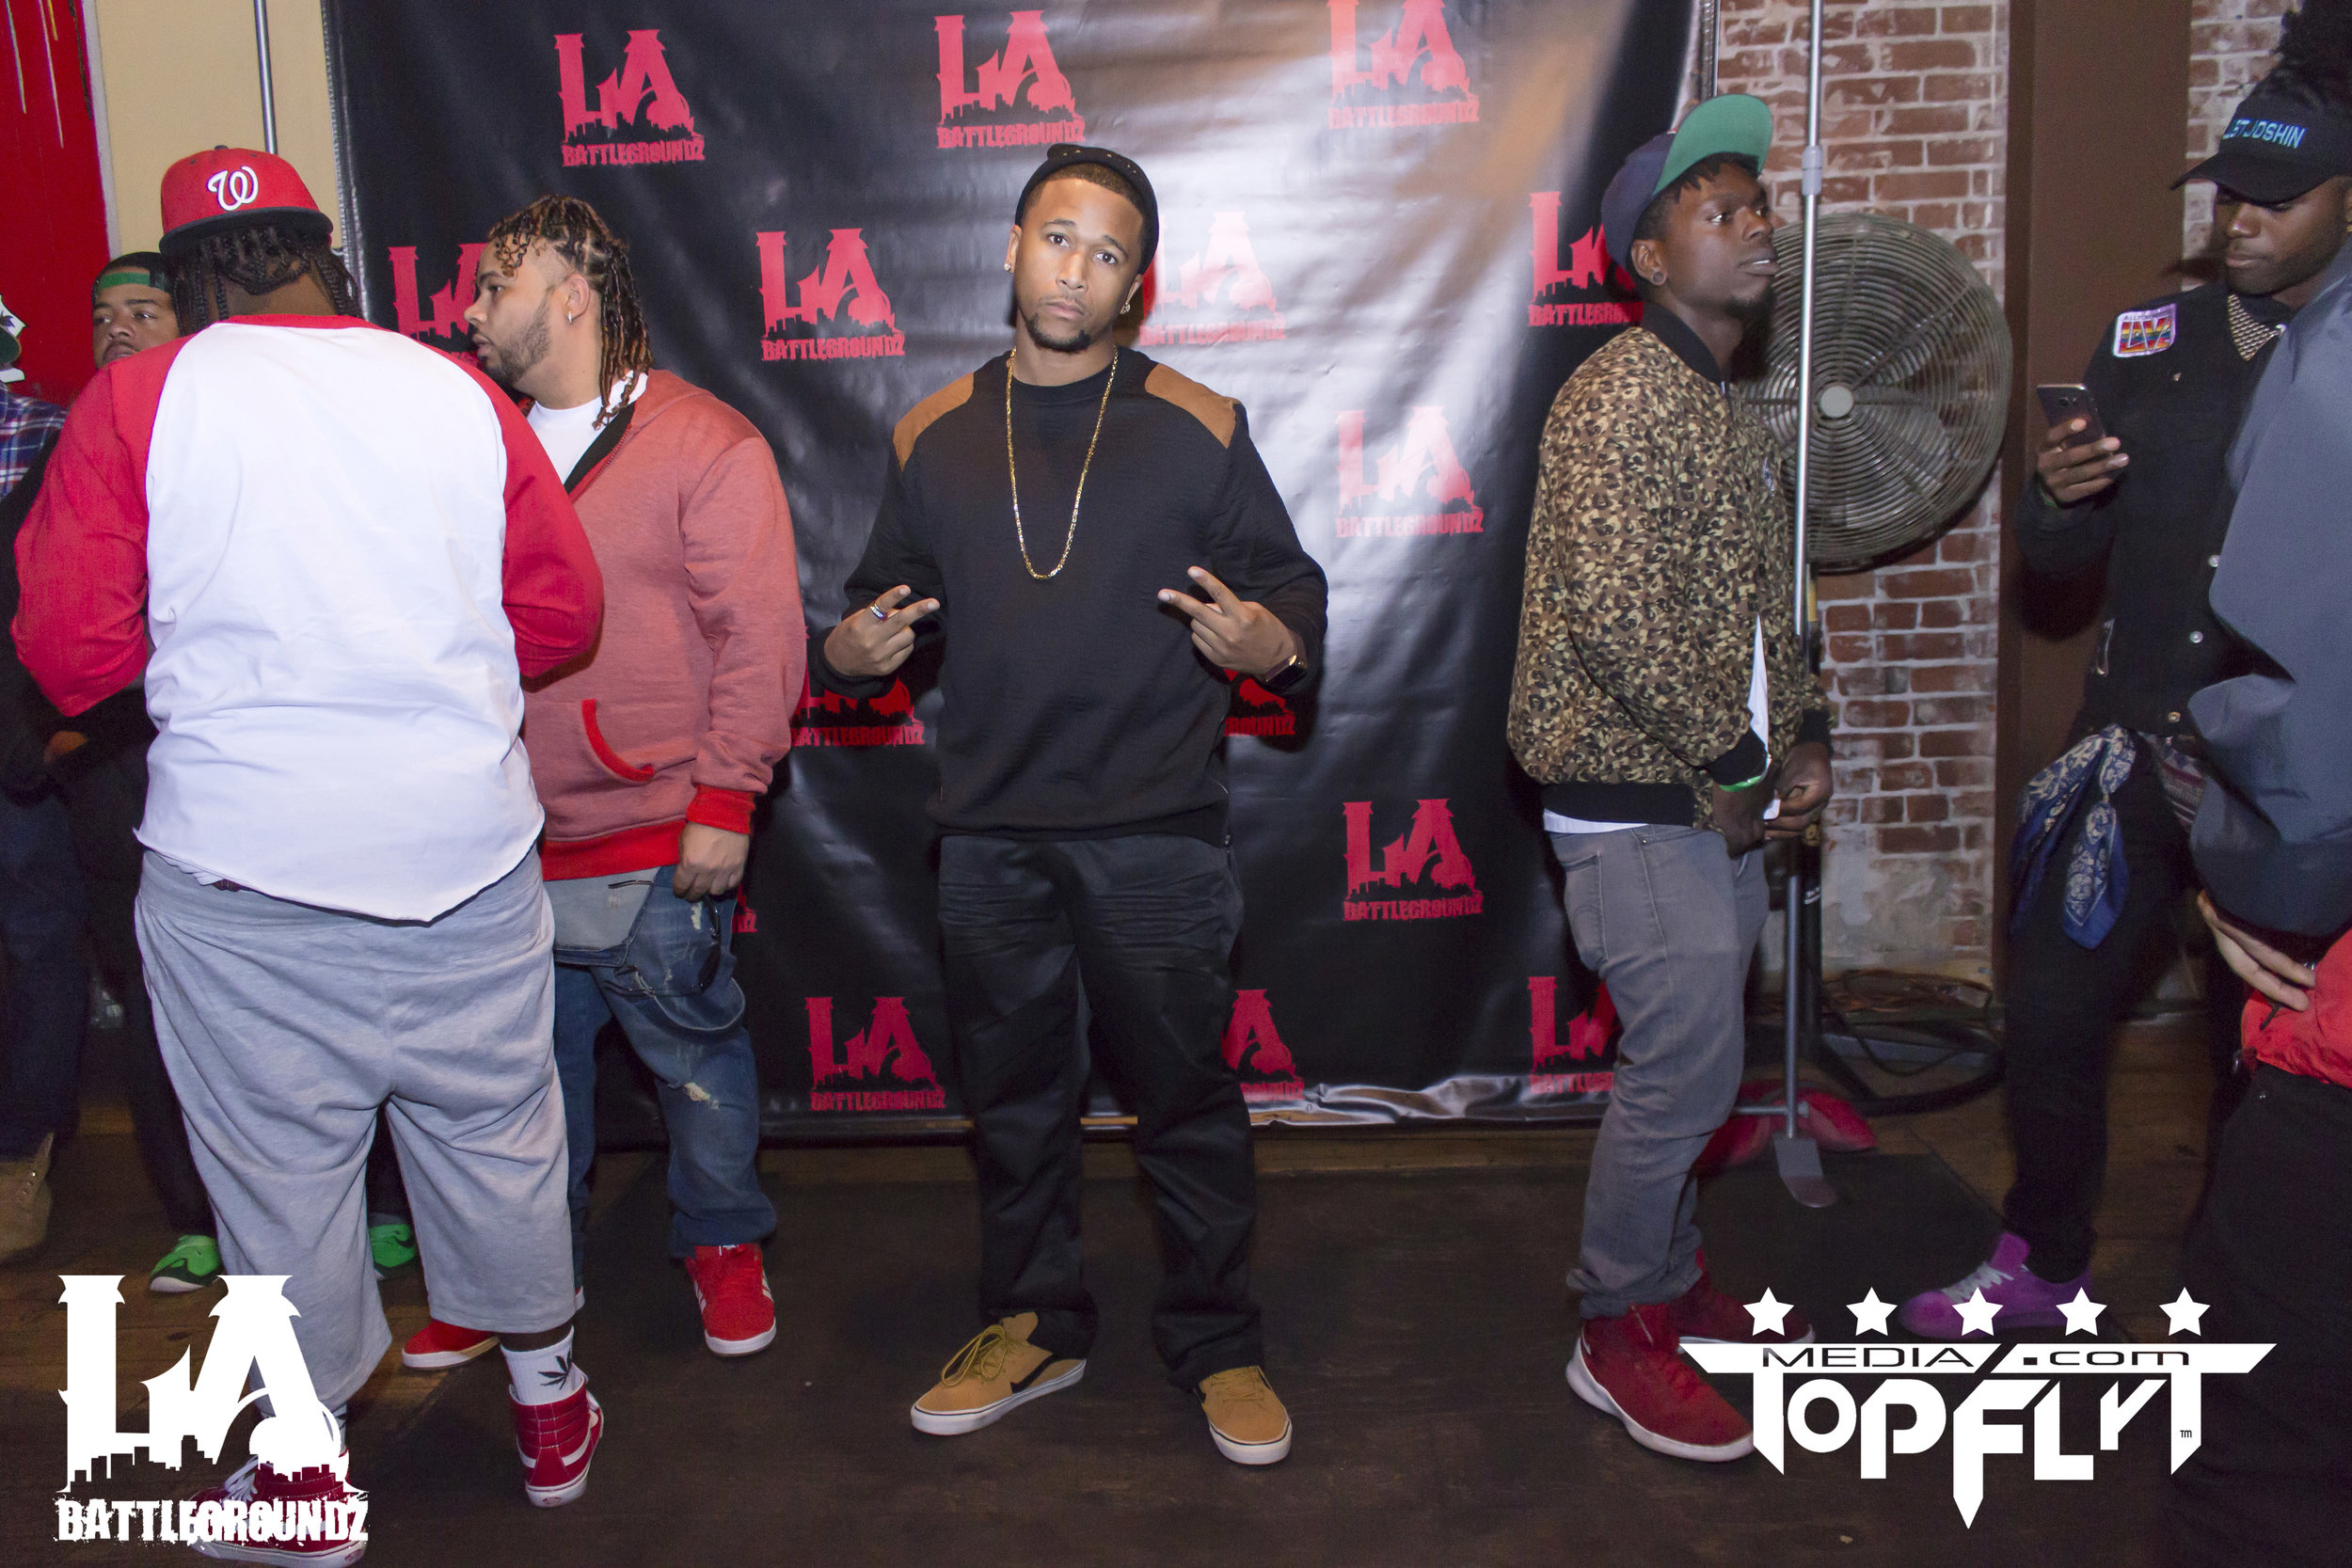 LA Battlegroundz - Decembarfest - The Christening_9.jpg